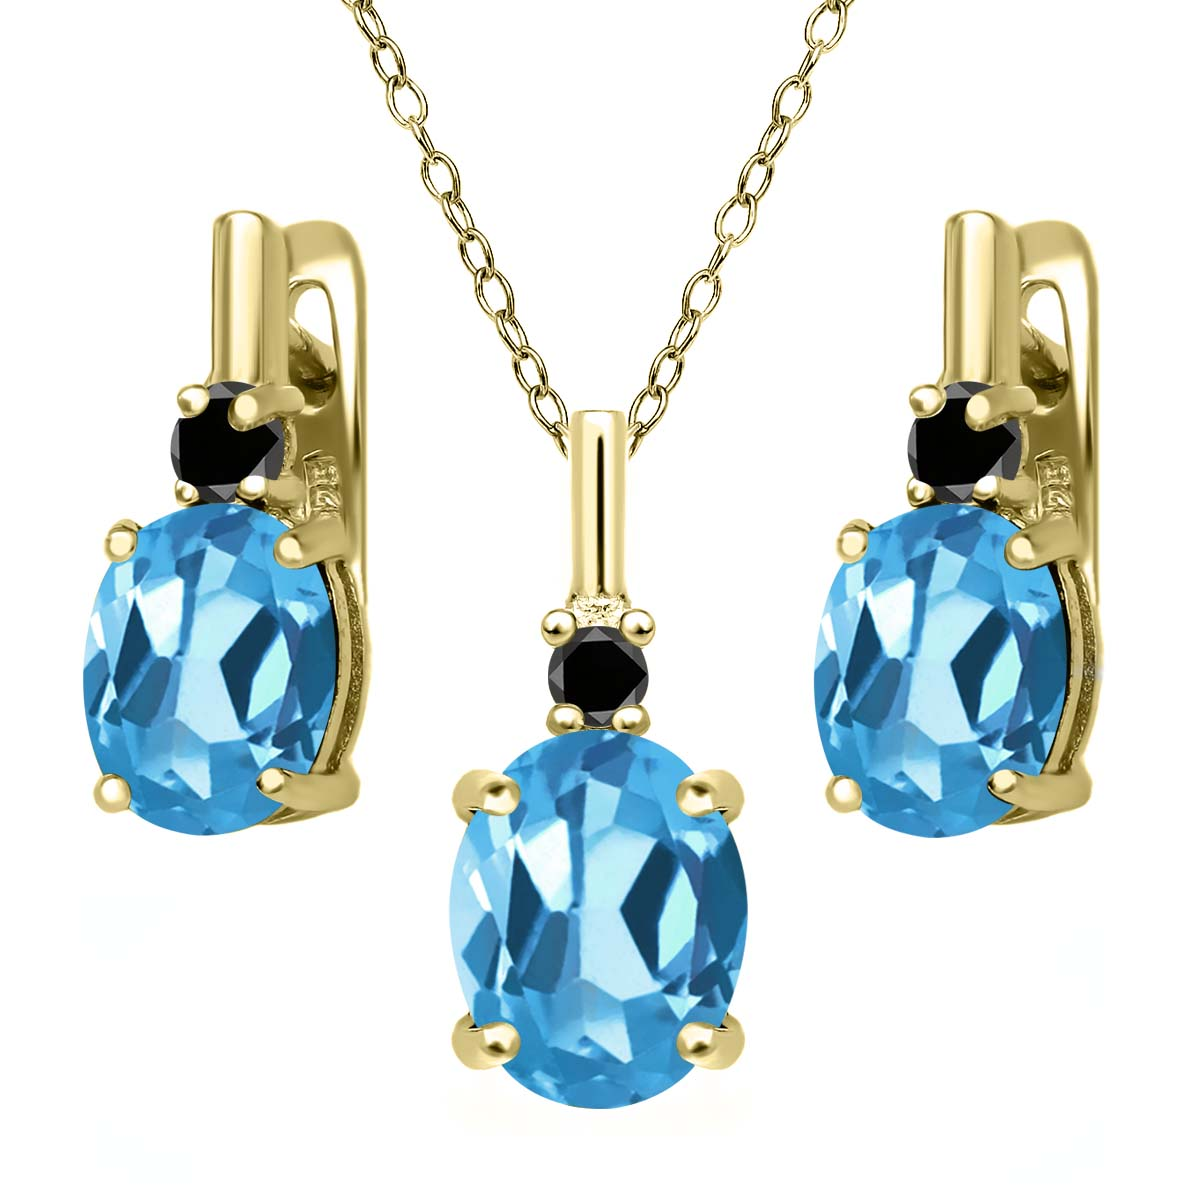 6.67 Ct Swiss Blue Topaz Black Diamond 18K Yellow Gold Plated Silver Pendant Earrings Set by